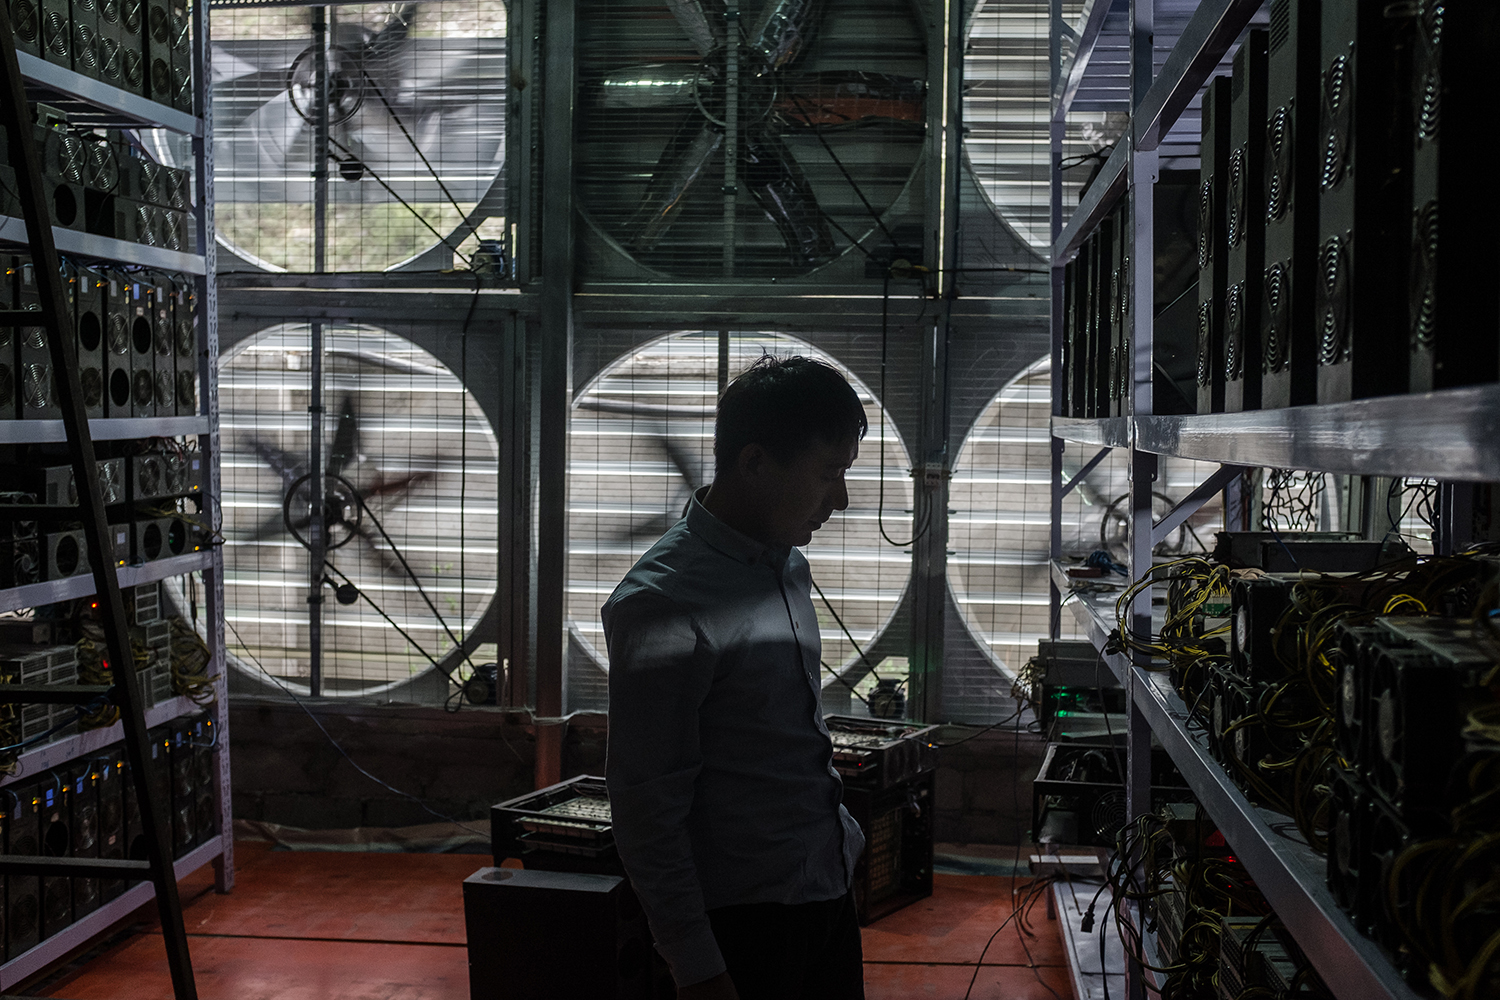 Liu, 29, stands in front of a wall of cooling fans at his Bitcoin mine where he houses and operates mining machines for miners who don't want to move to rural Sichuan, in Ngawa Tibetan and Qiang Autonomous Prefecture, Sichuan province, September 27, 2016.